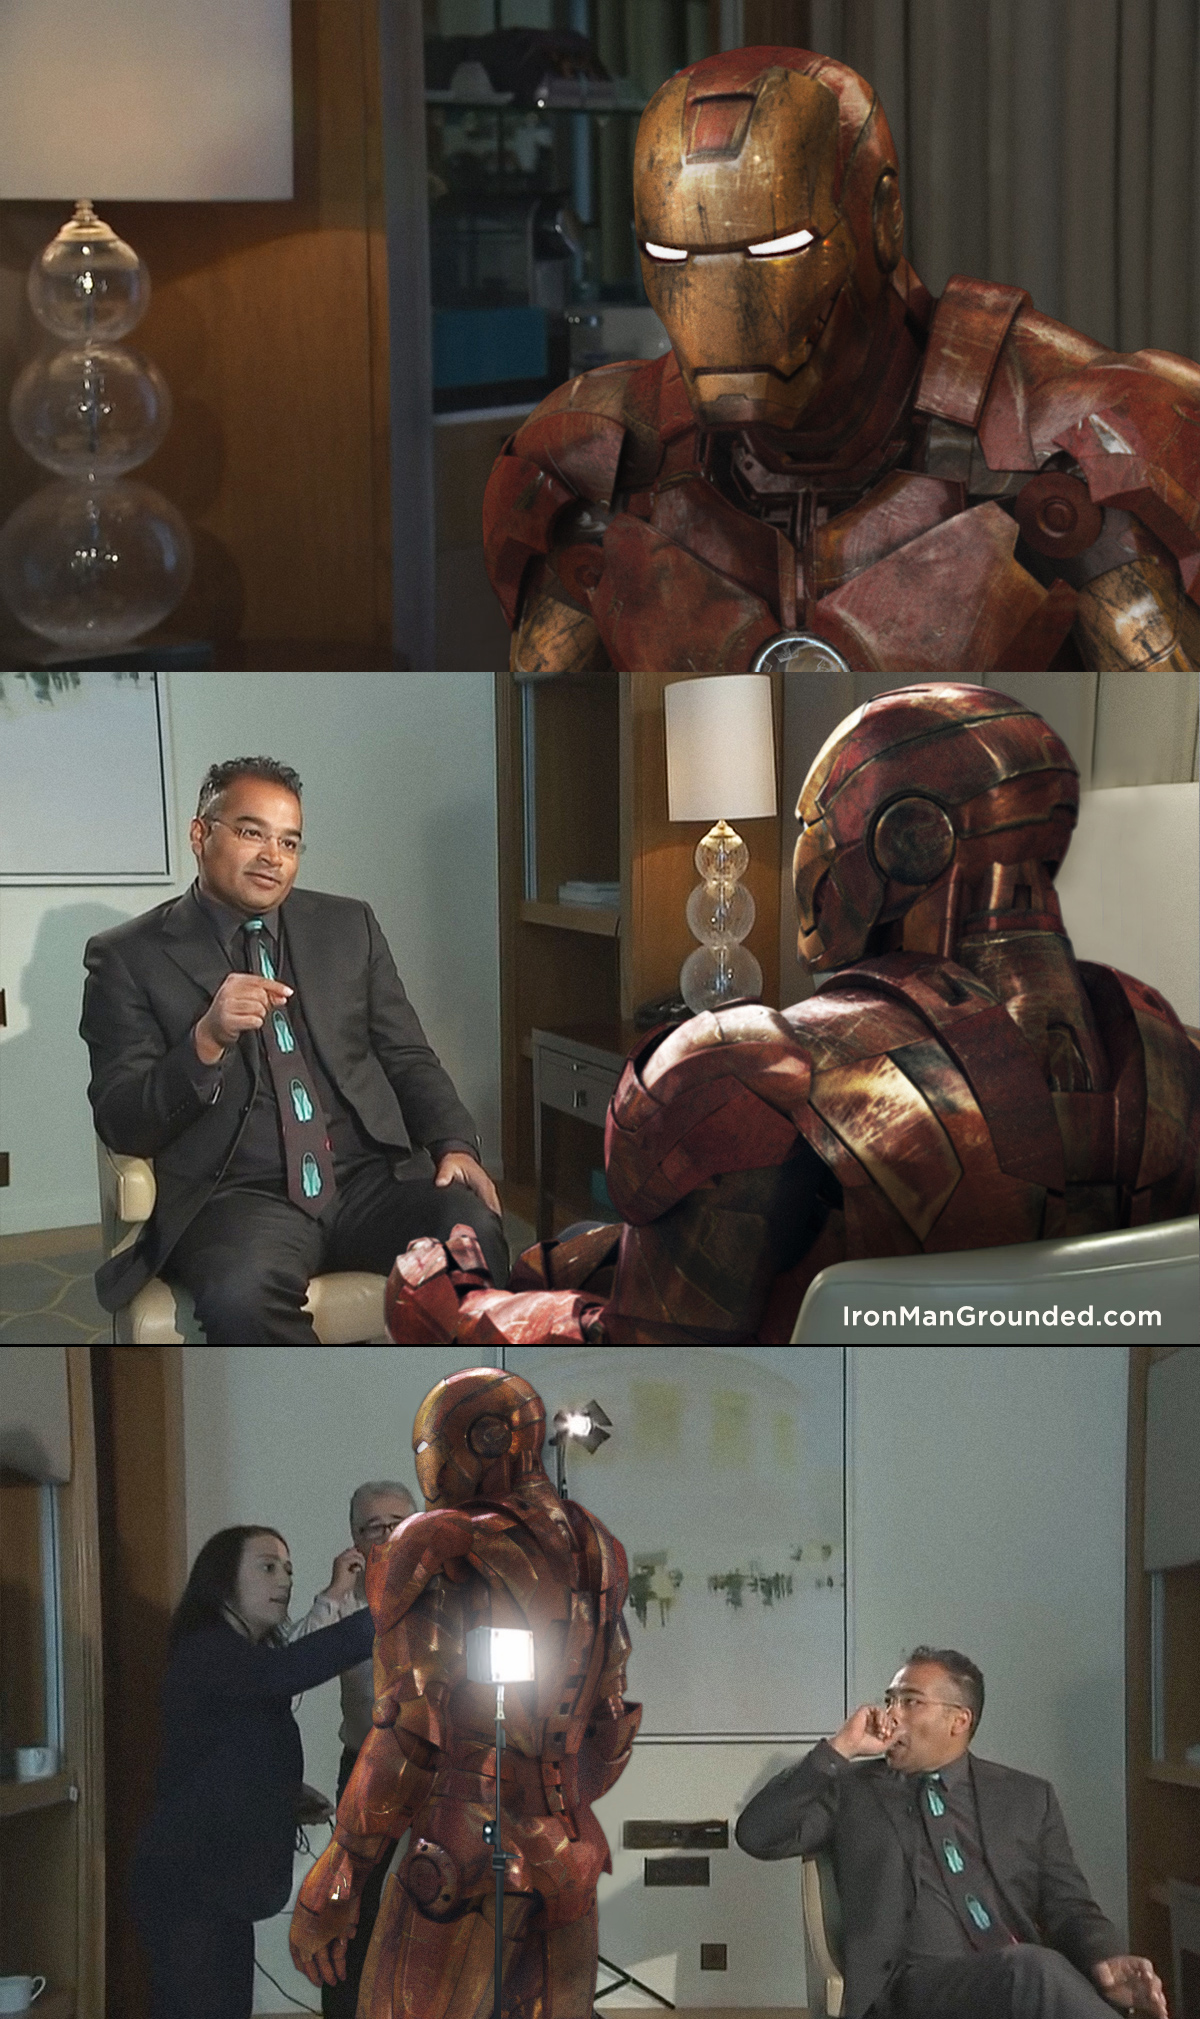 2_iron_man_walks_out_of_interview_iron_man_grounded